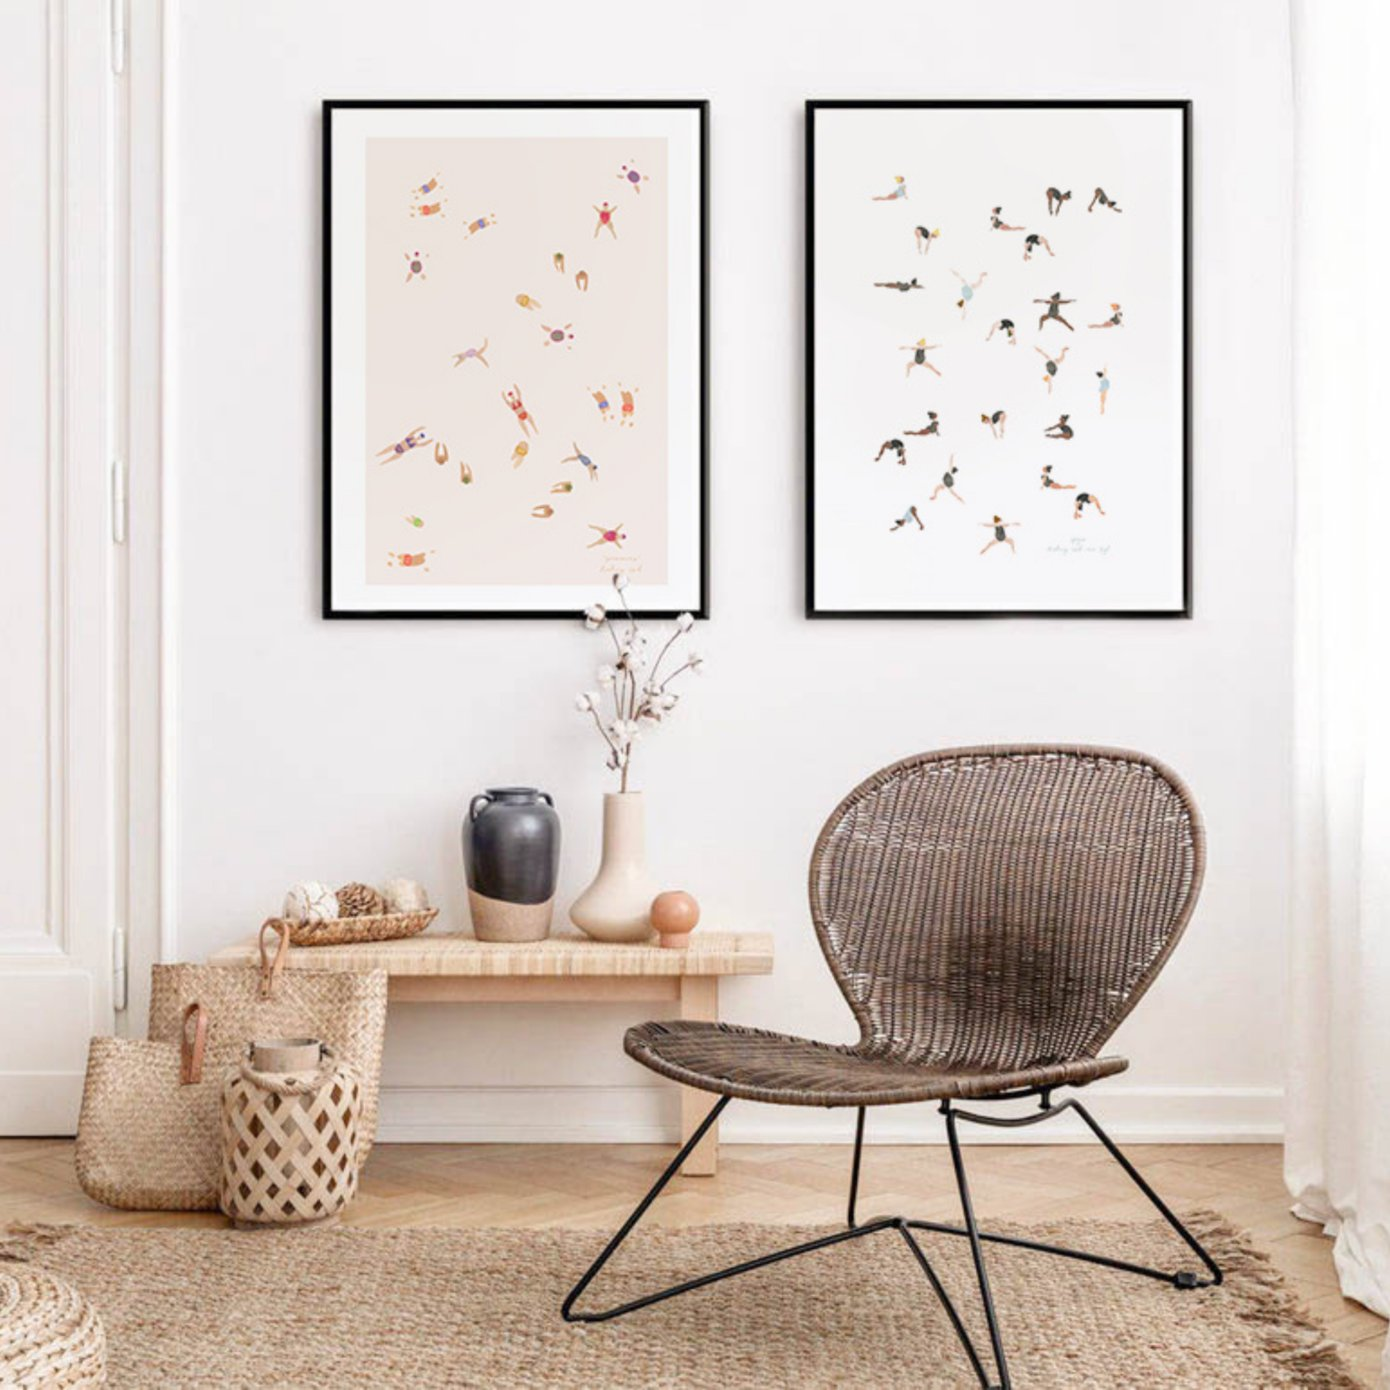 Art Prints & Wall Art